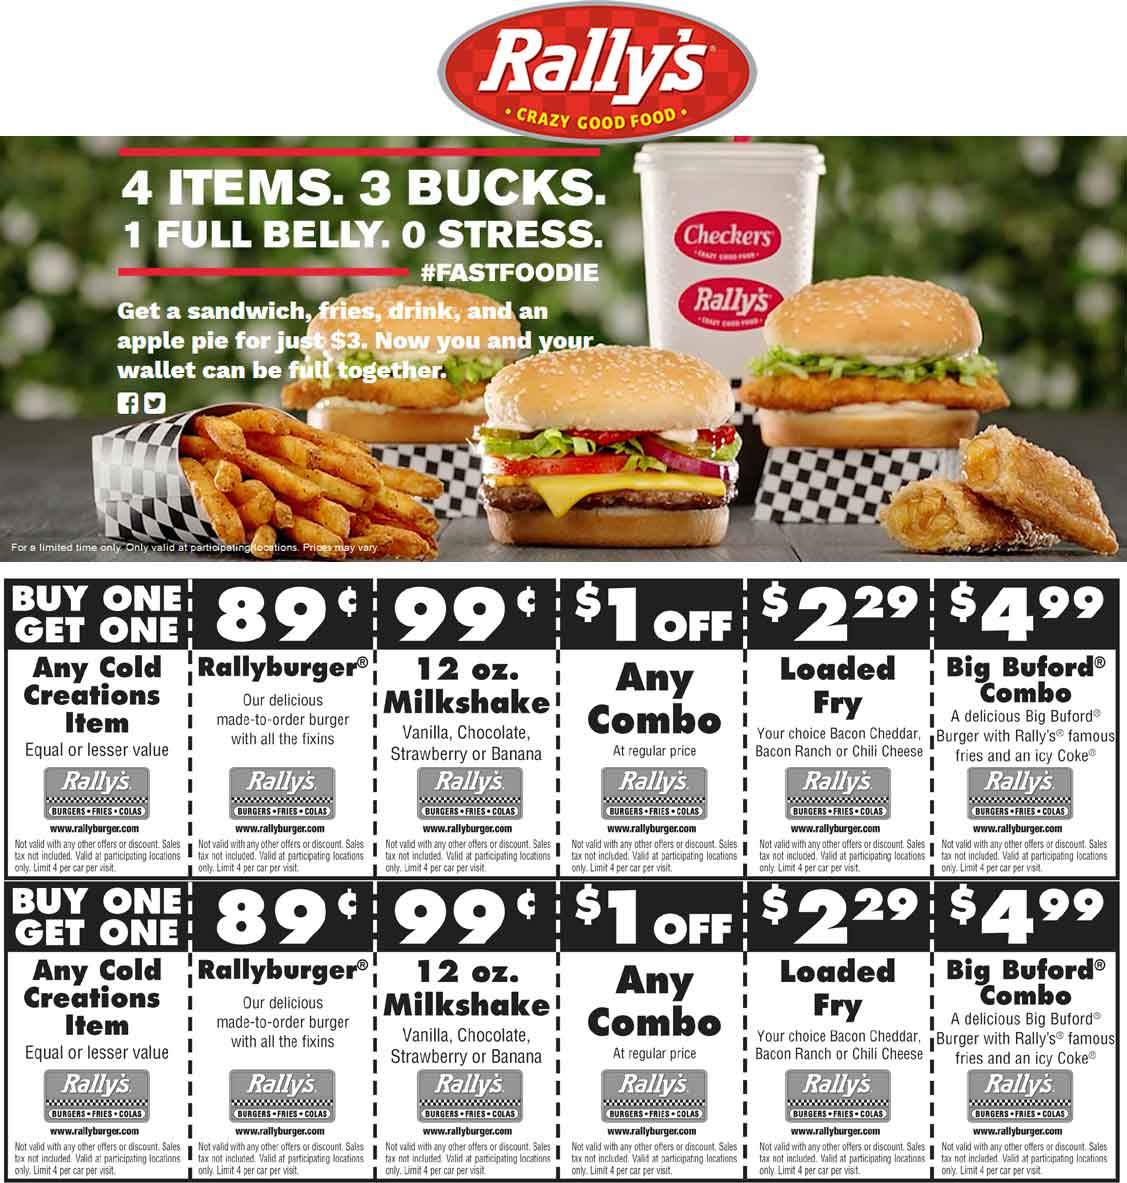 Rallys Coupon June 2018 Sandwich + fries + drink + pie = $3 & more at Rallys restaurants